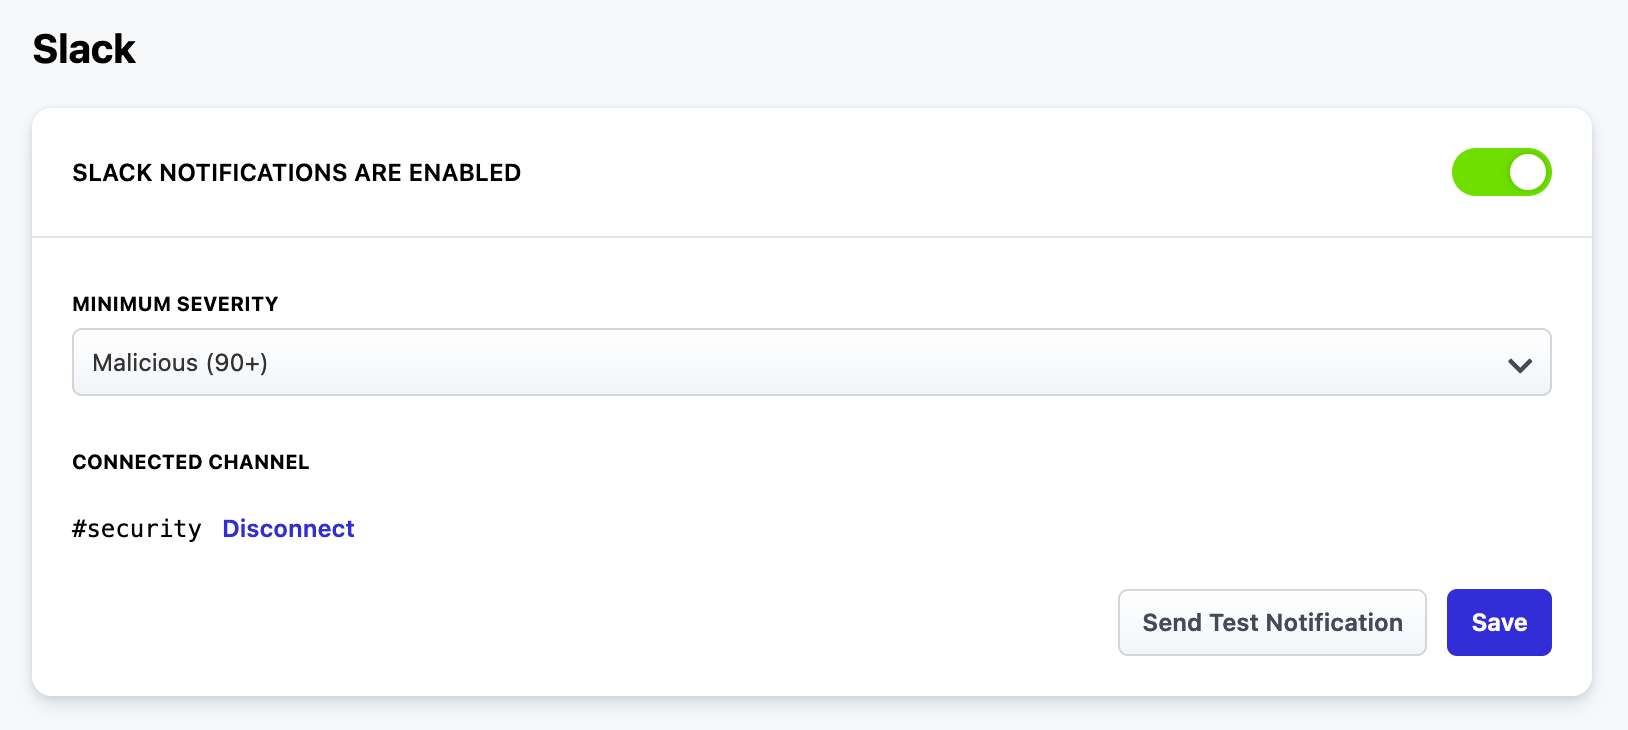 The Slack Integration can be found in the Dashboard Settings - Threat Alerts page